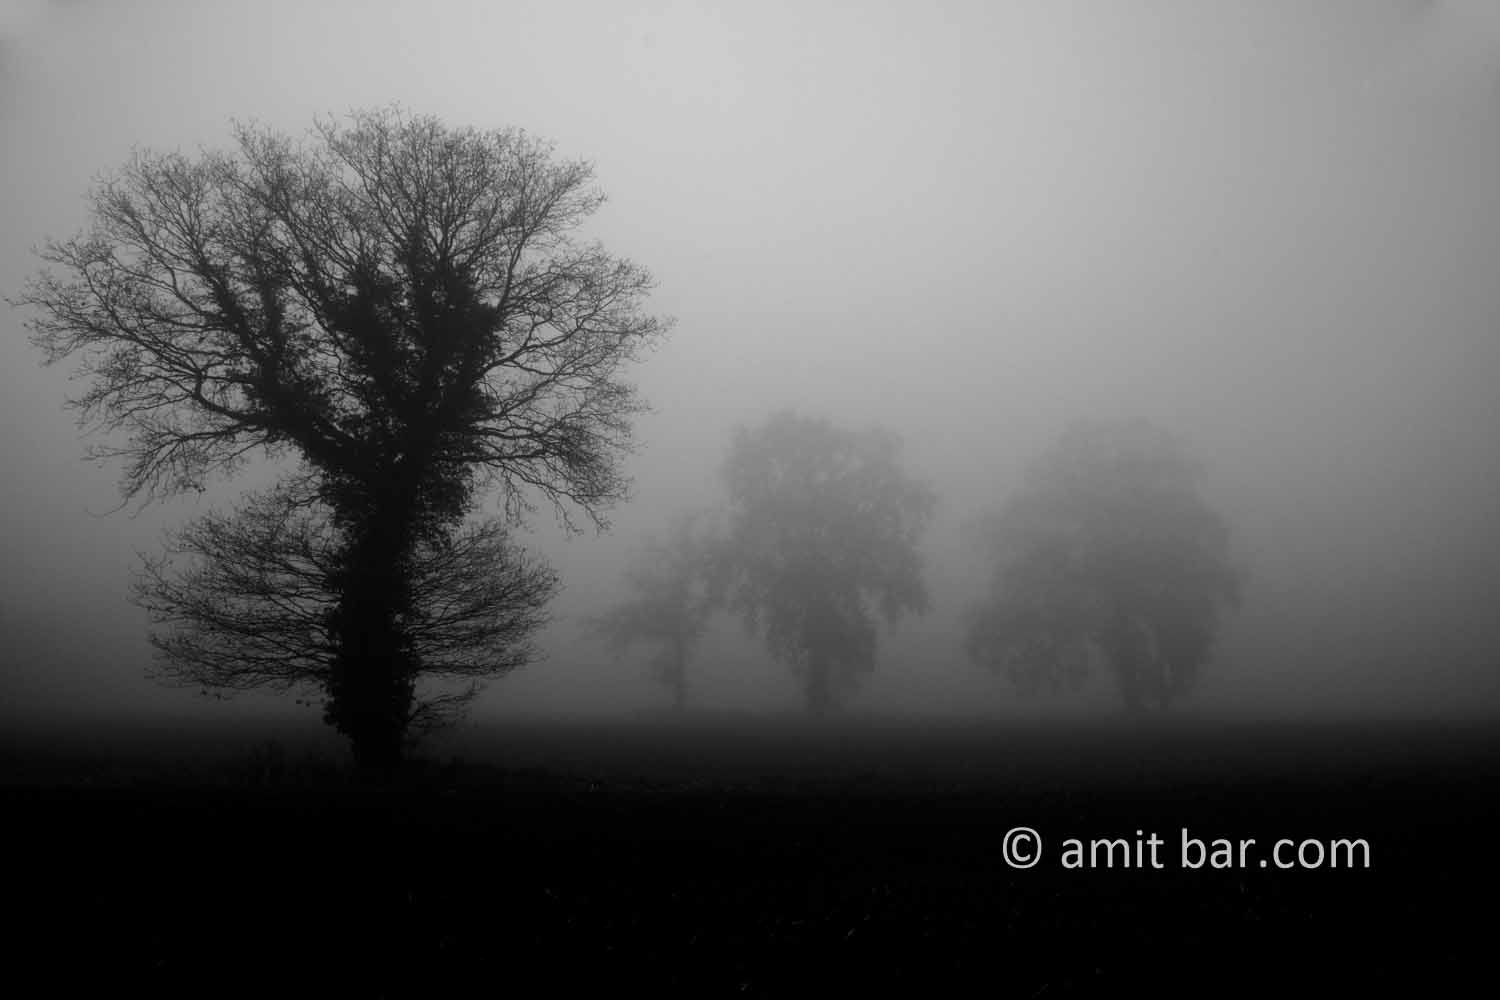 Misty field: Oak trees on a misty field at Broekstraat, Doetinchem